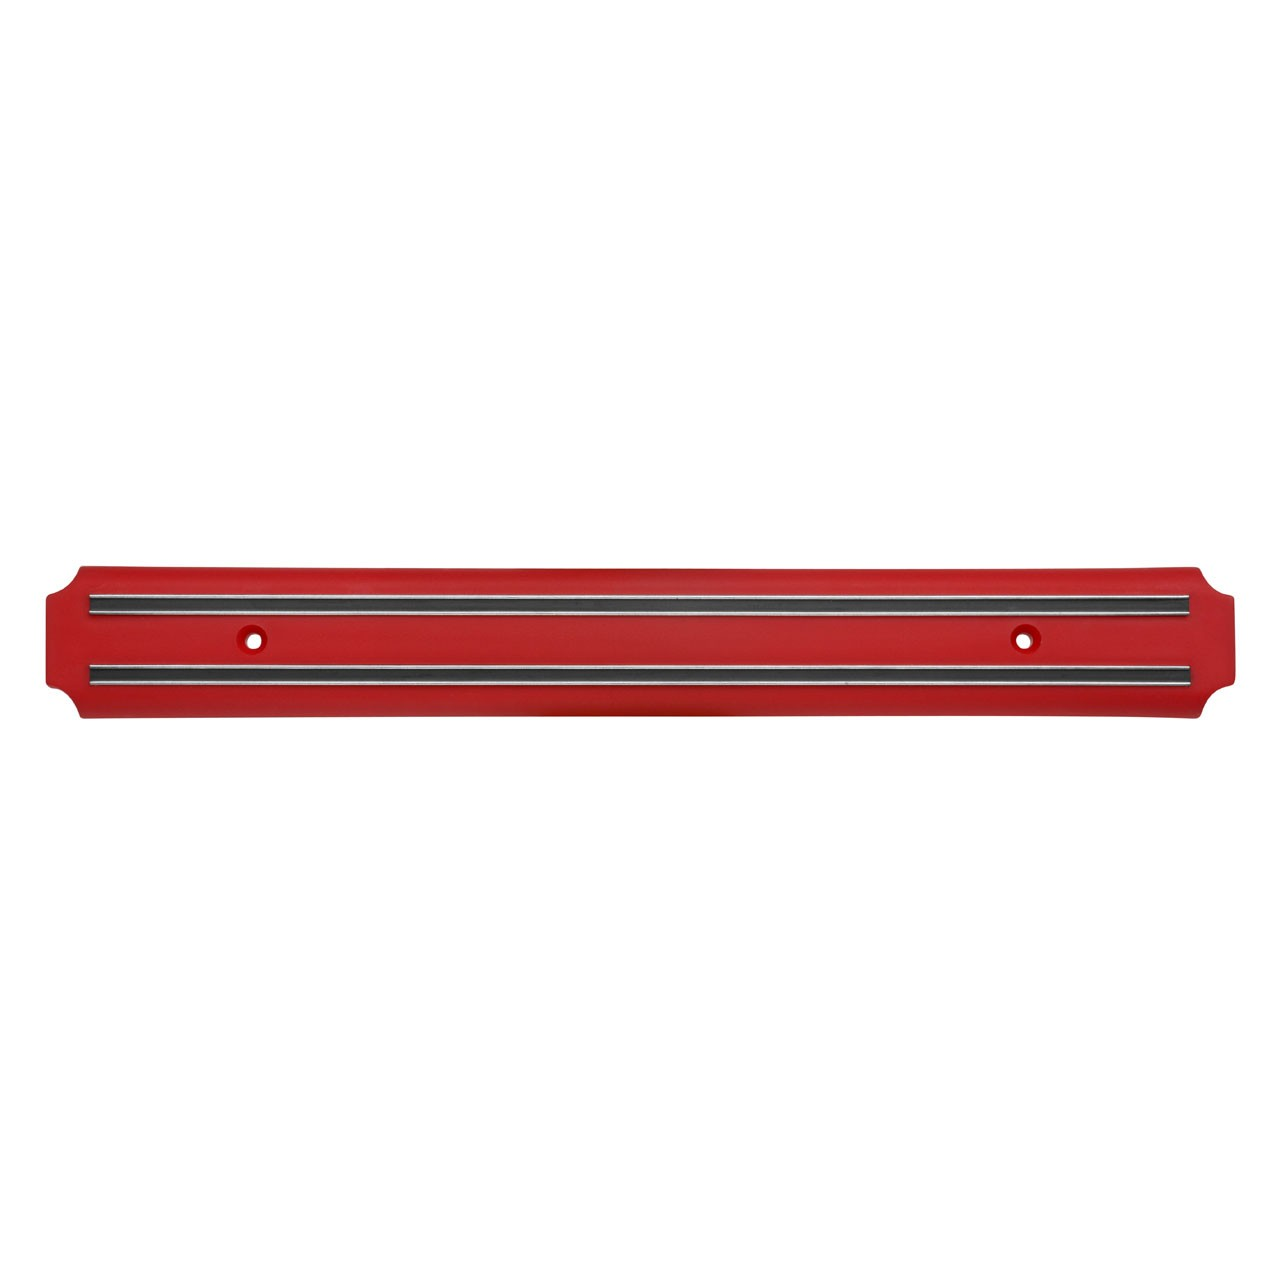 Magnetic Knife Storage Bar - Red